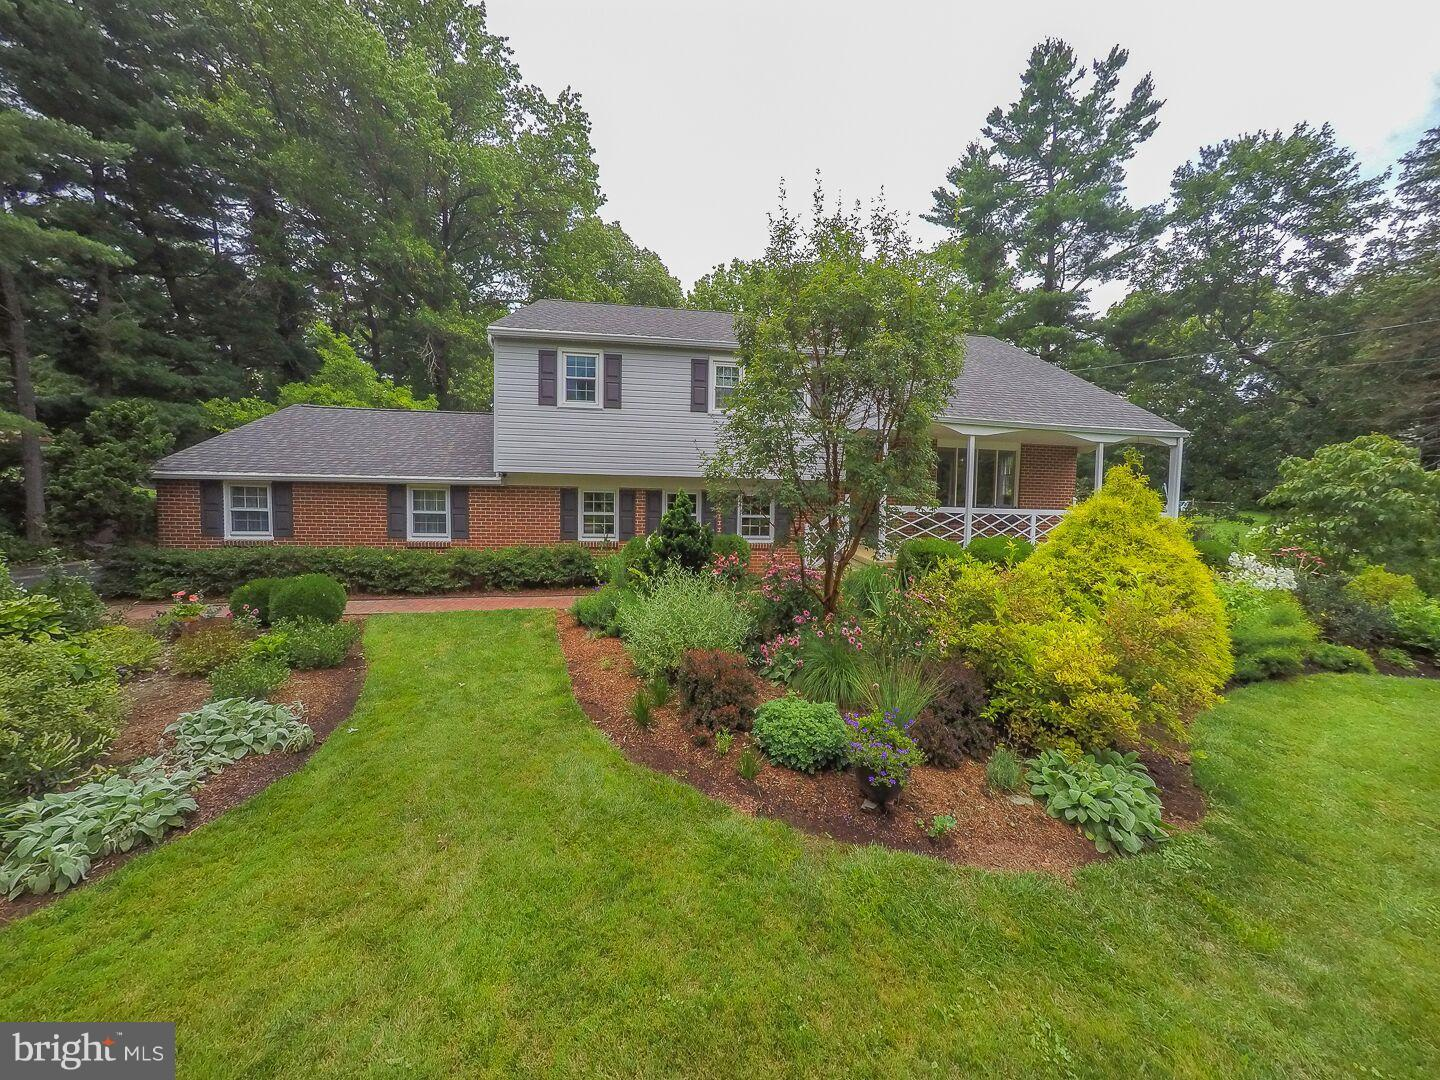 1603 E BOOT ROAD, West Chester, PA 19380